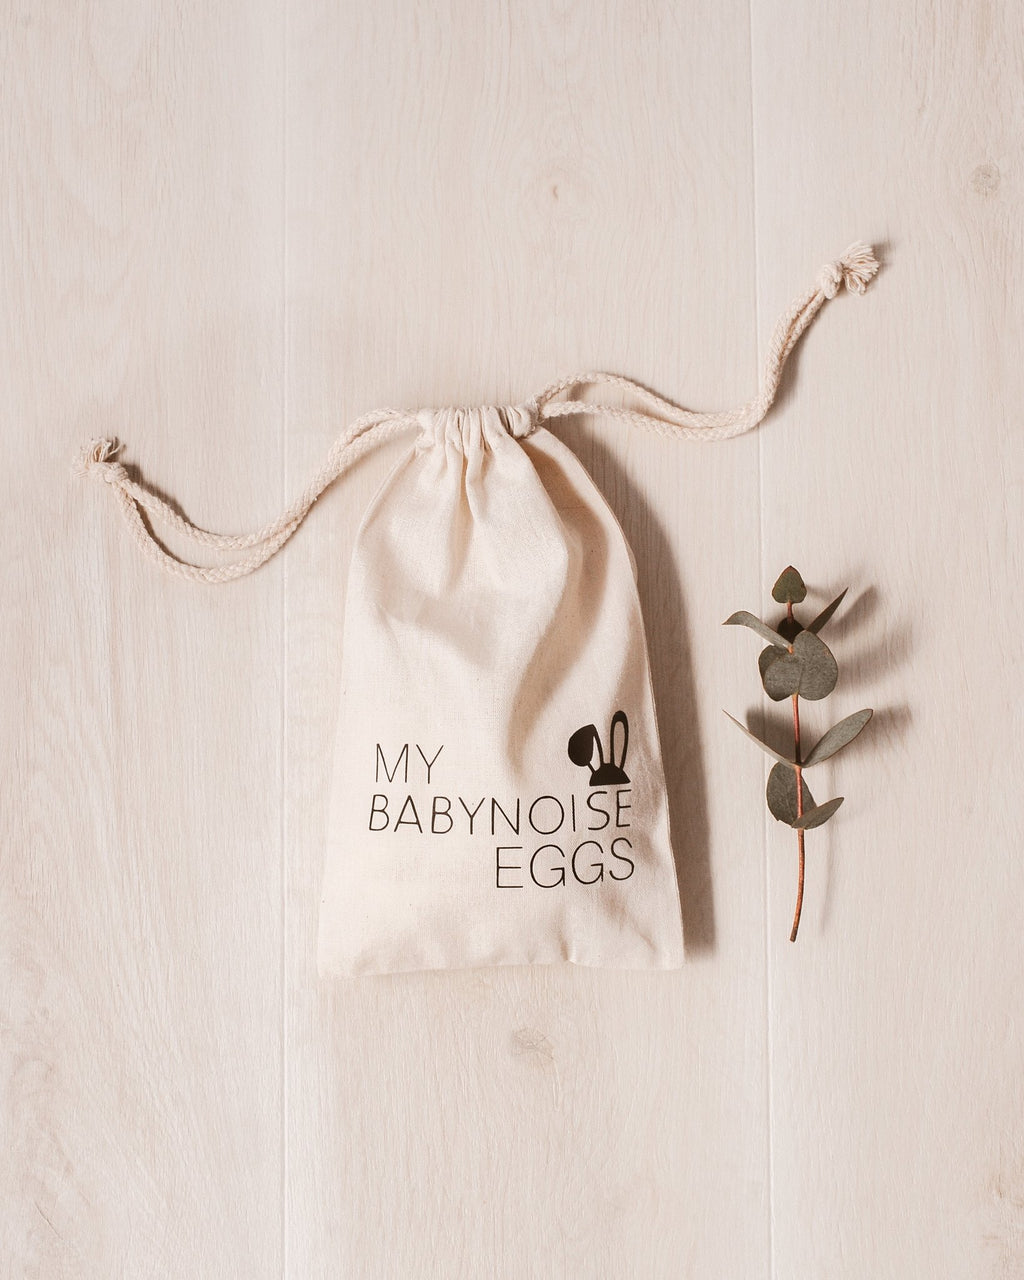 My Babynoise Eggs - Small Bag